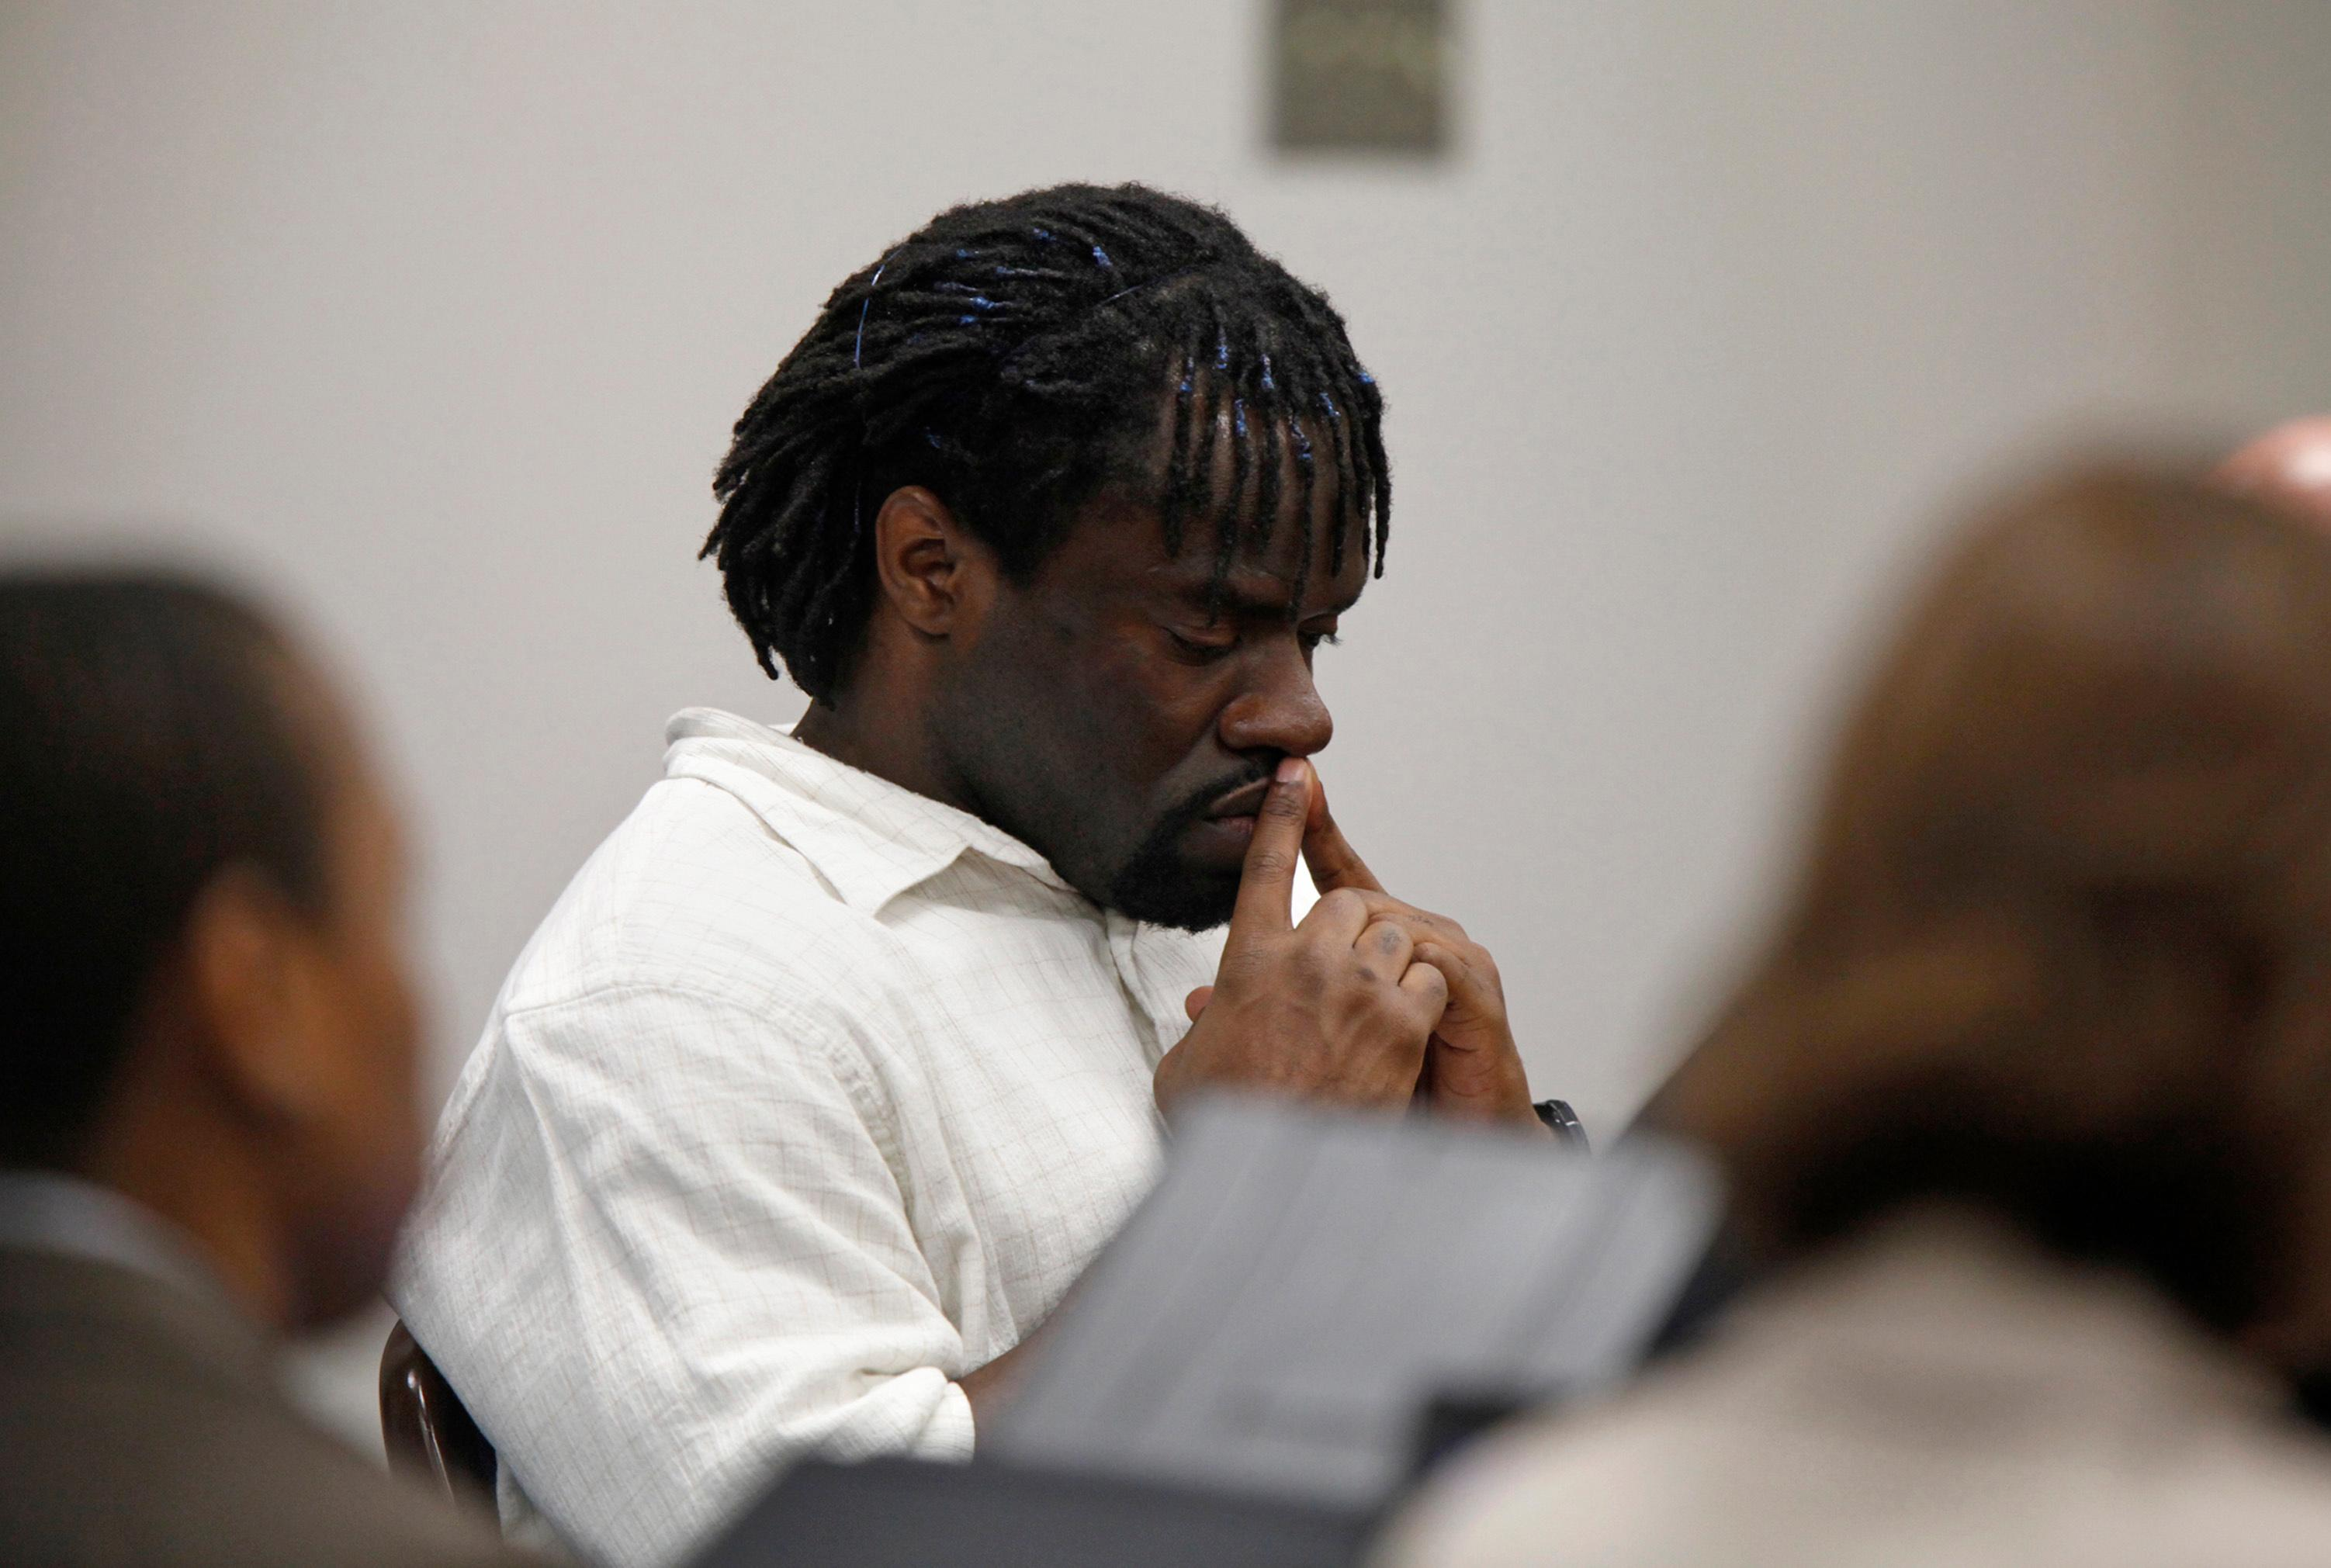 Landmark US case to expose rampant racial bias behind the death penalty